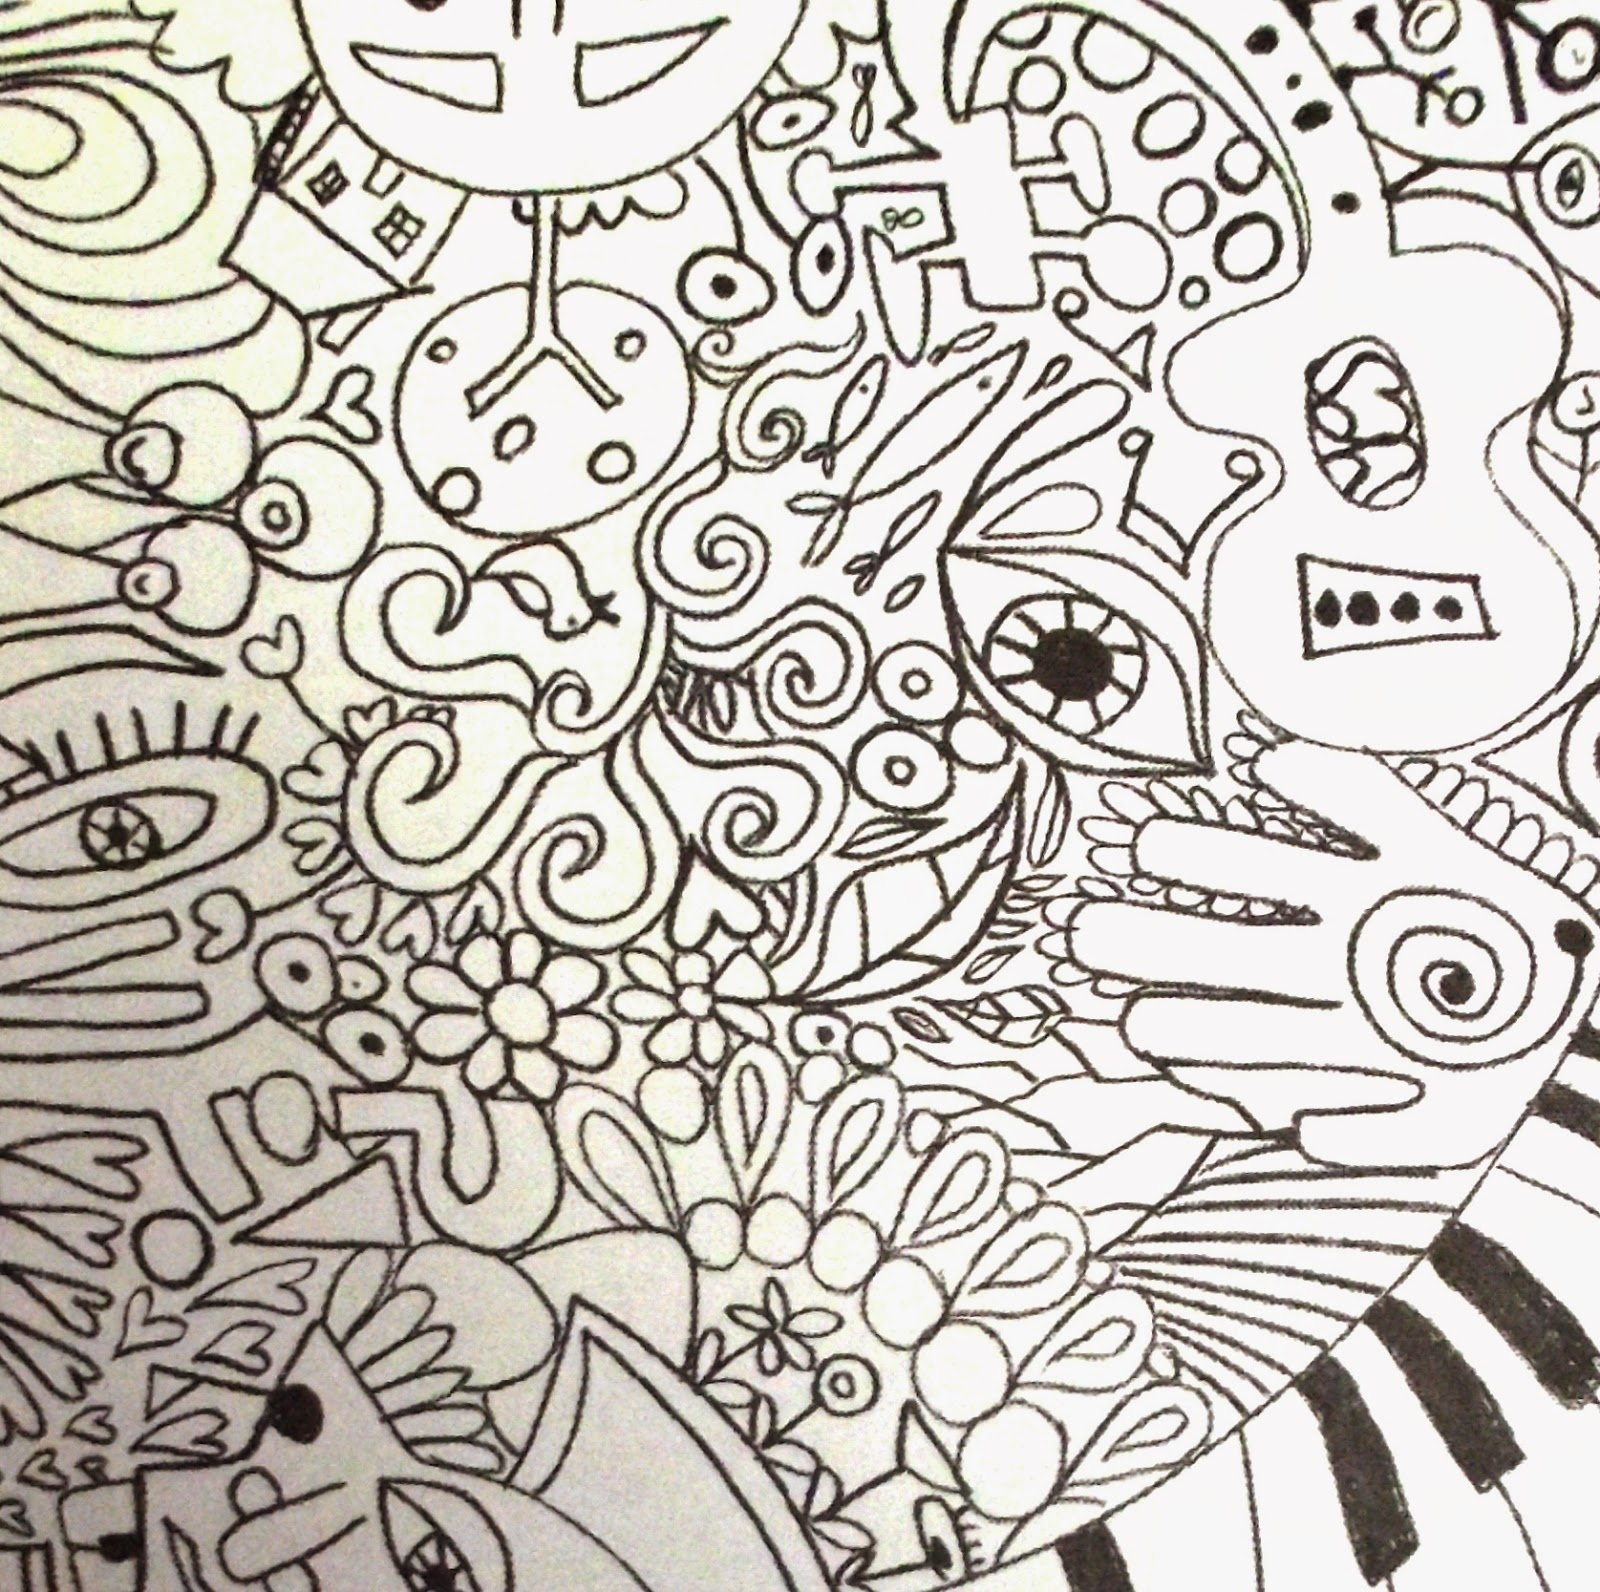 Abstract Coloring Pages For Adults Difficult : Abstract coloring pages for teenagers difficult